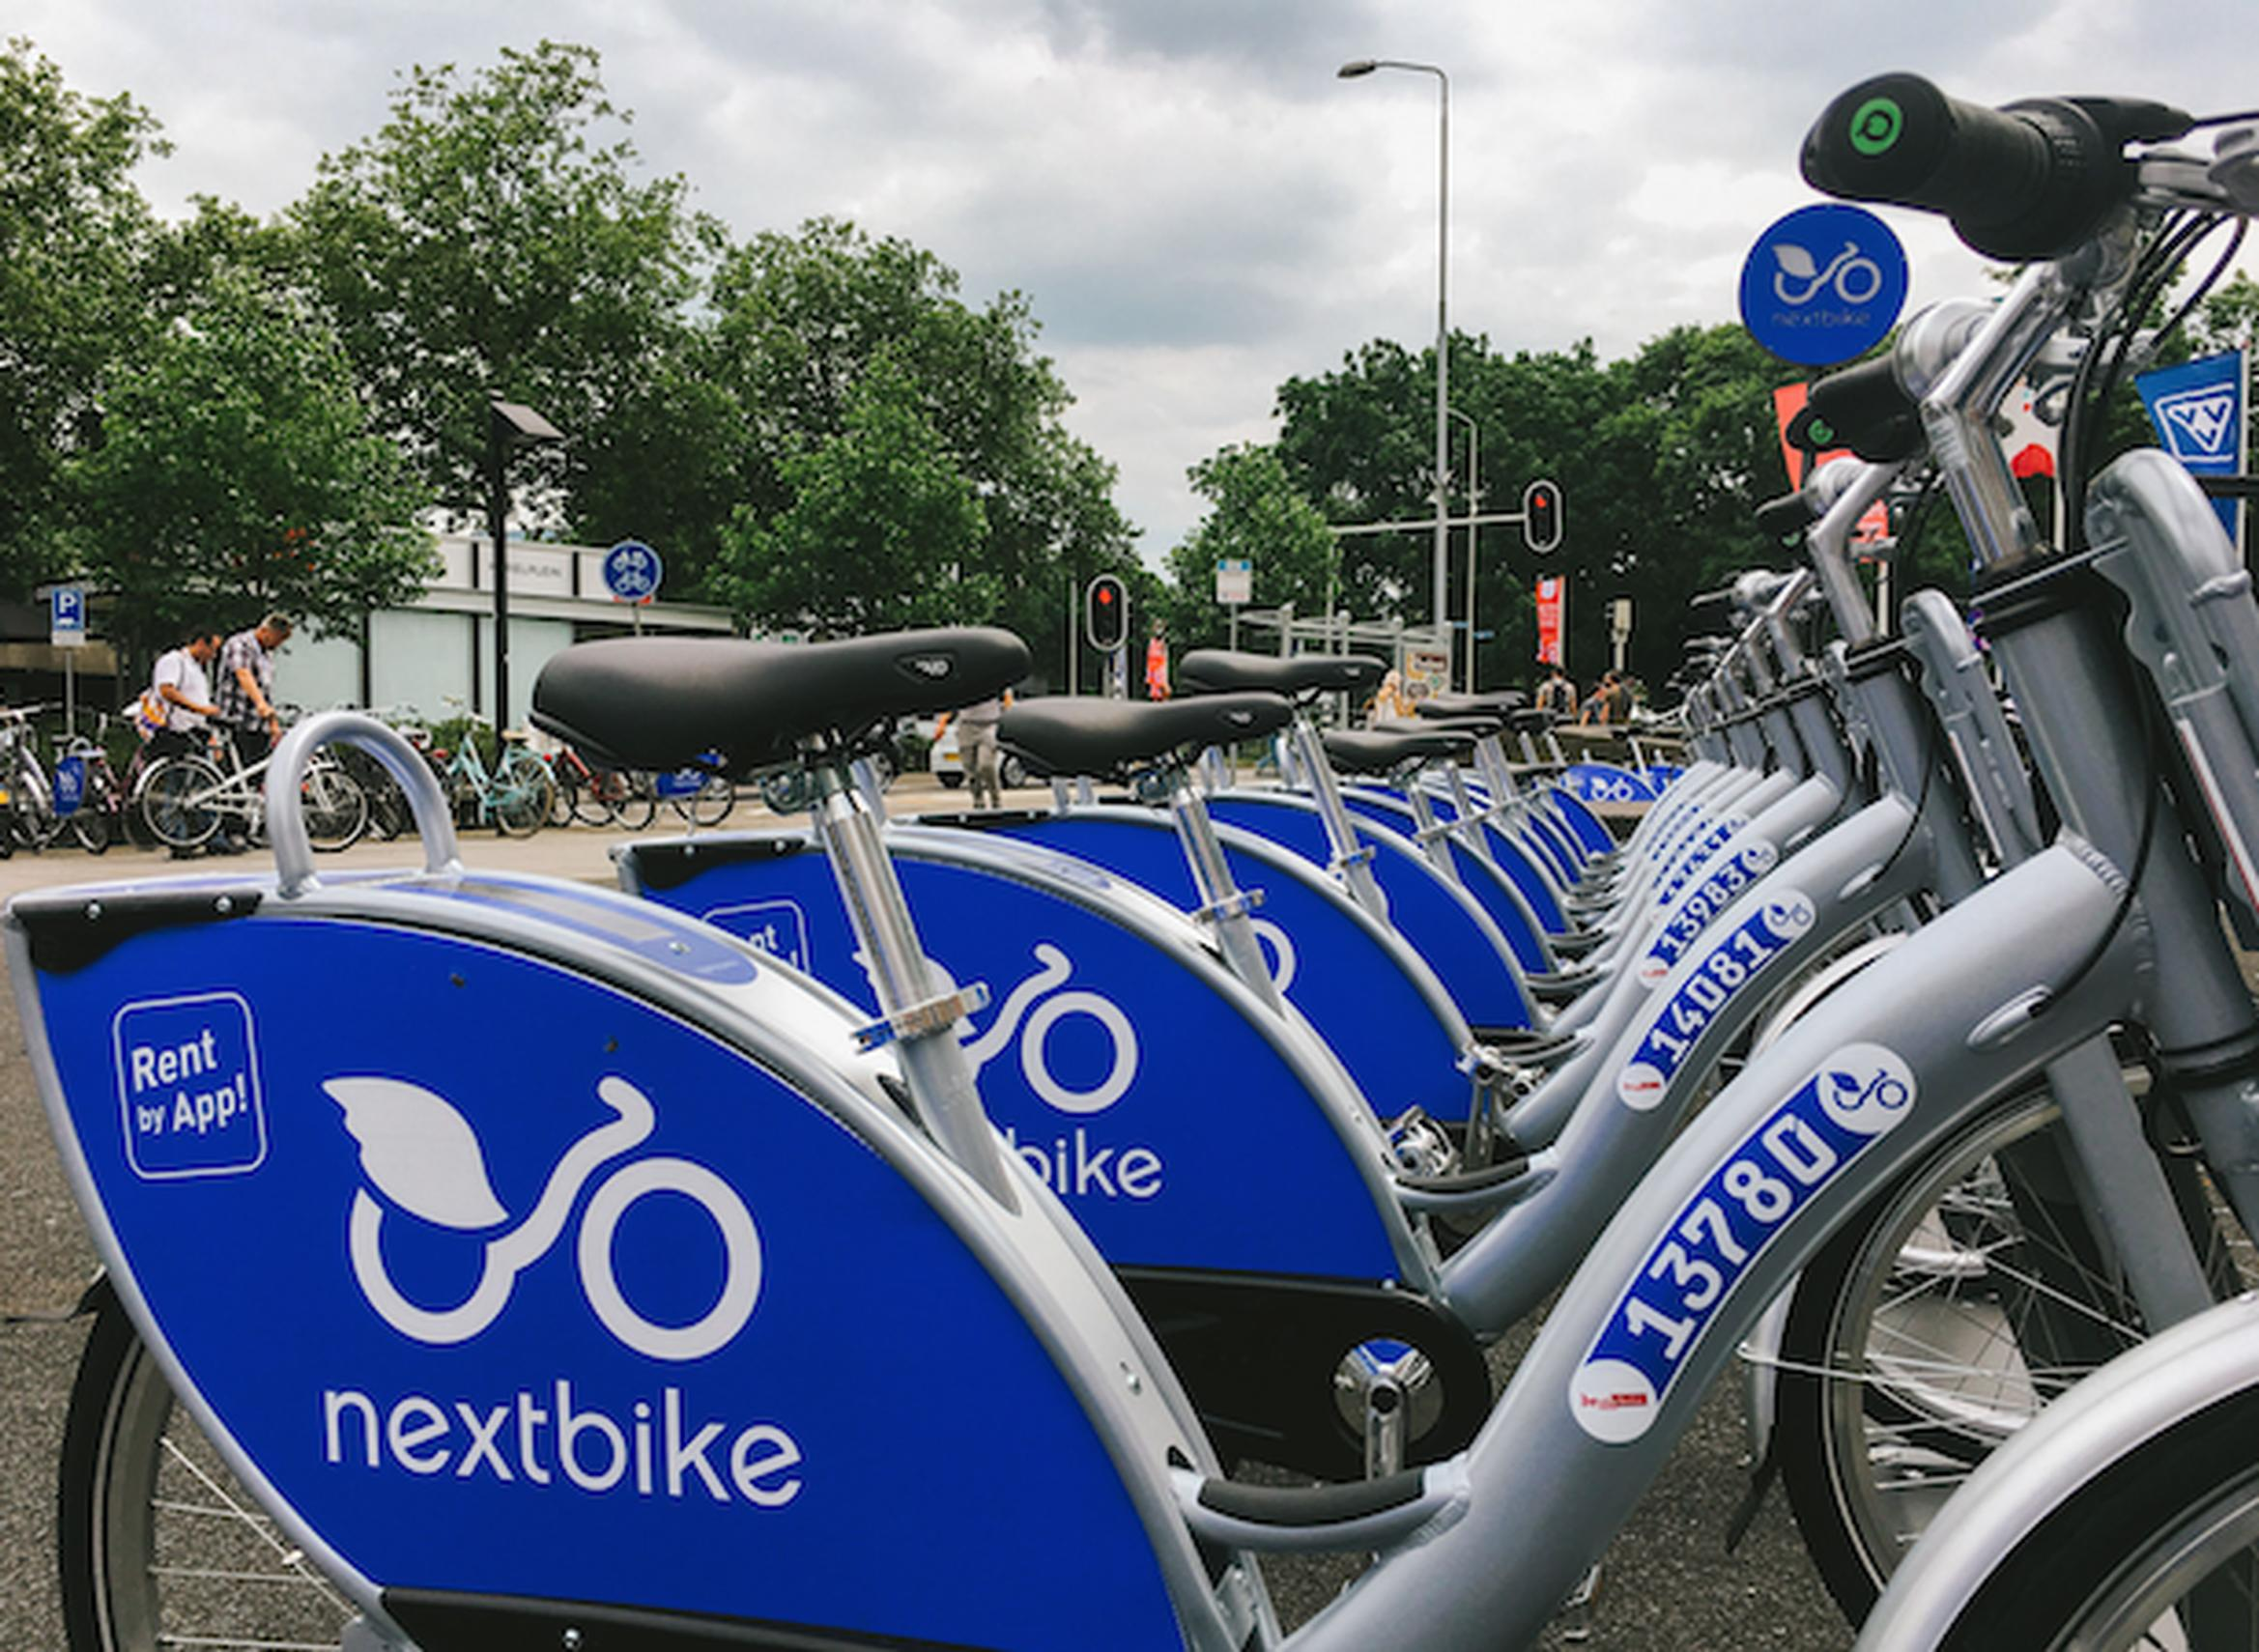 Cardiff Bus adds nextbike to its app